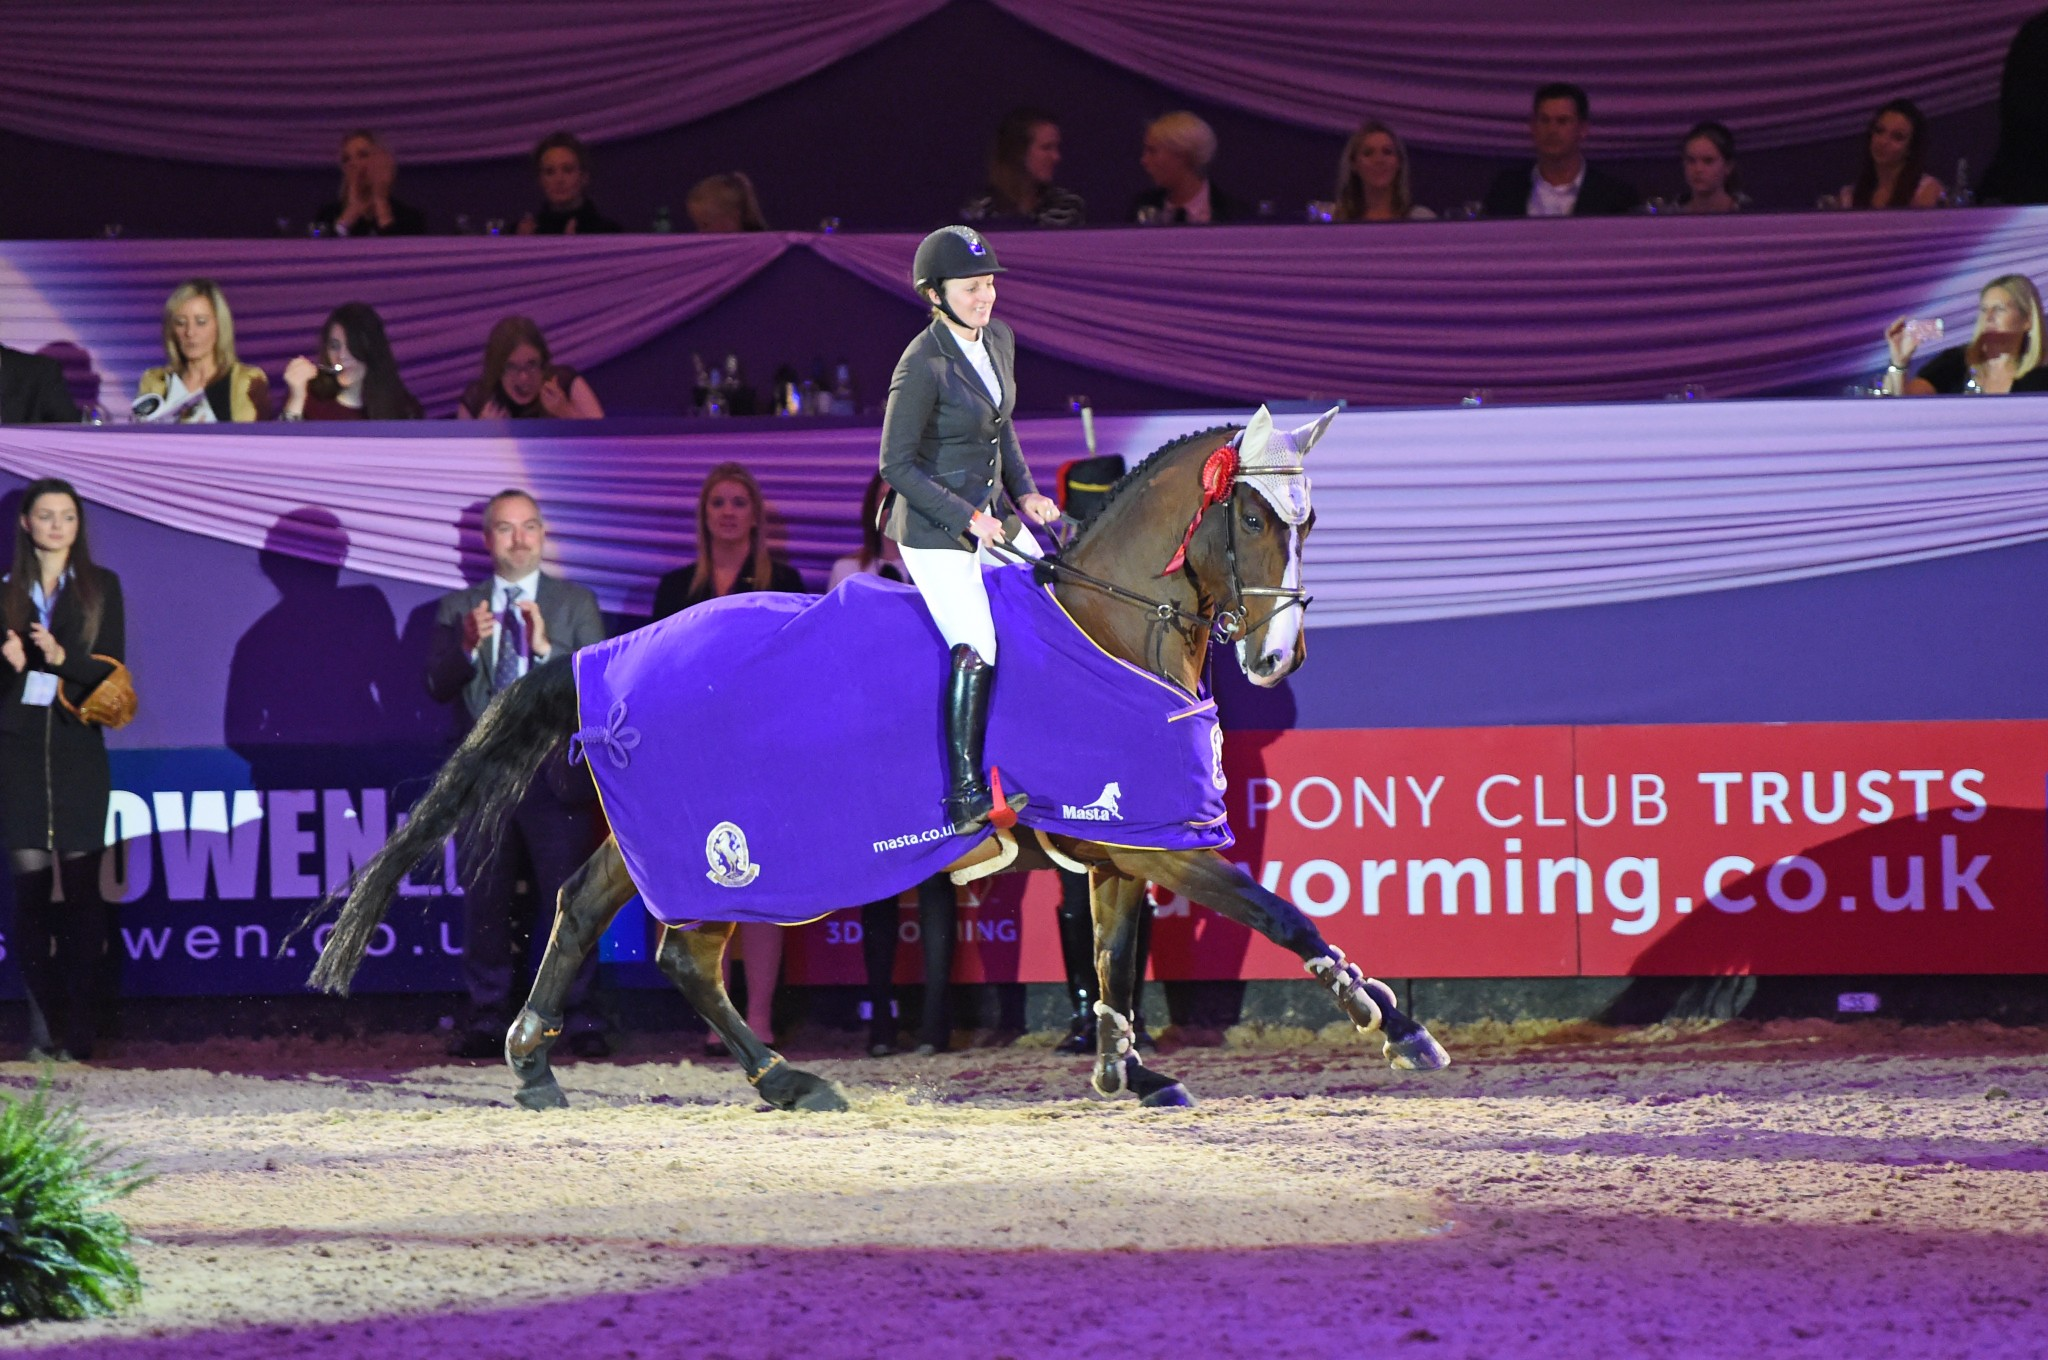 Horse of the Year Show Challenge Cup - Another win for Louise Saywell in the Horse of the Year Show Challenge Cup